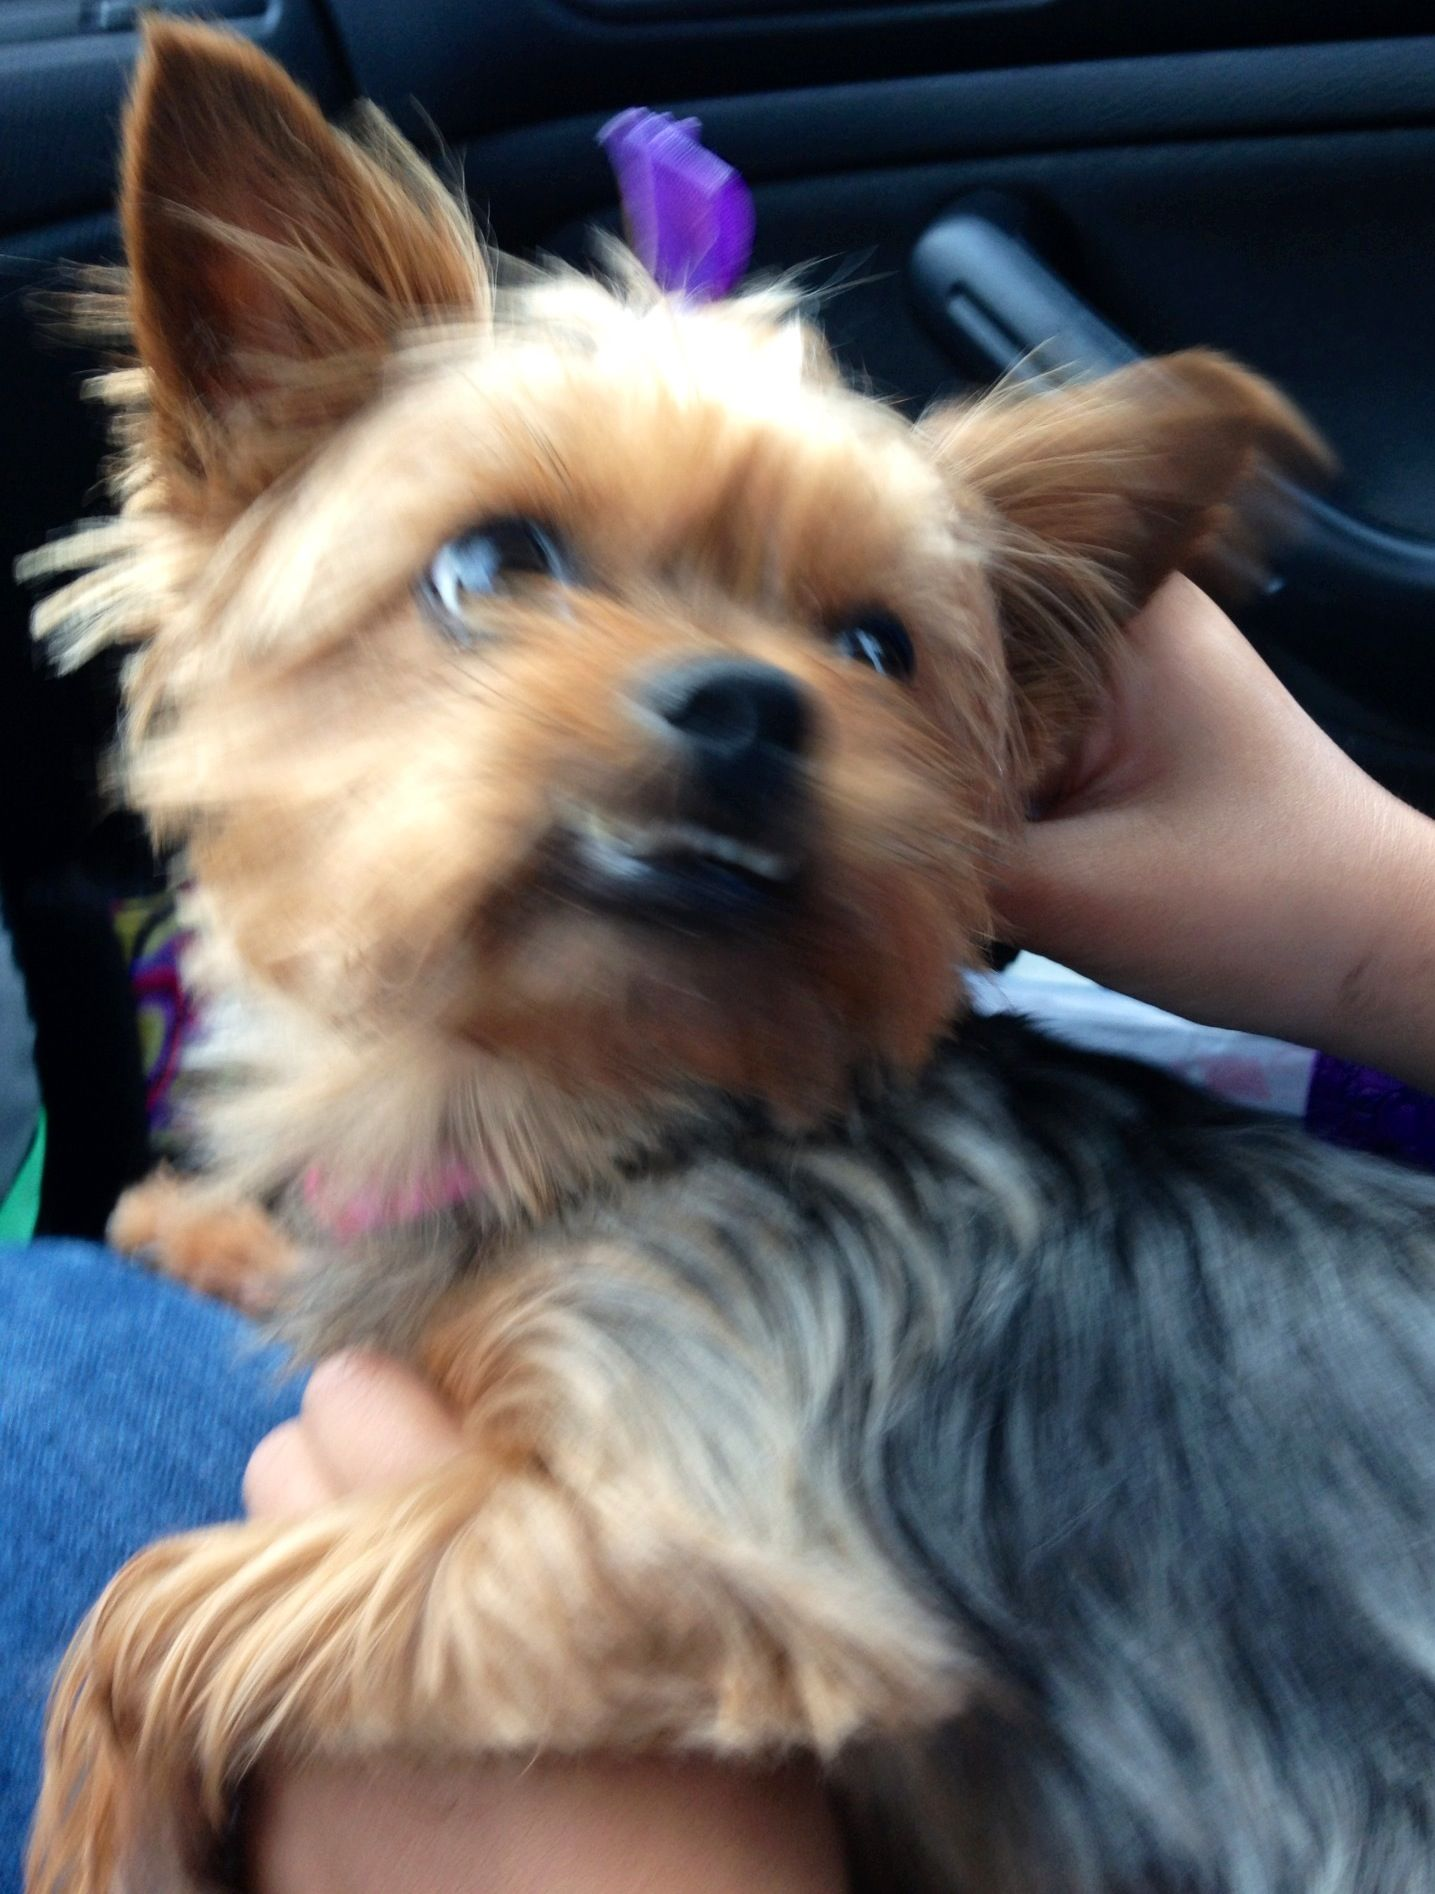 Ms princess Daisy Mae!!! Our adorable spoiled yorkie